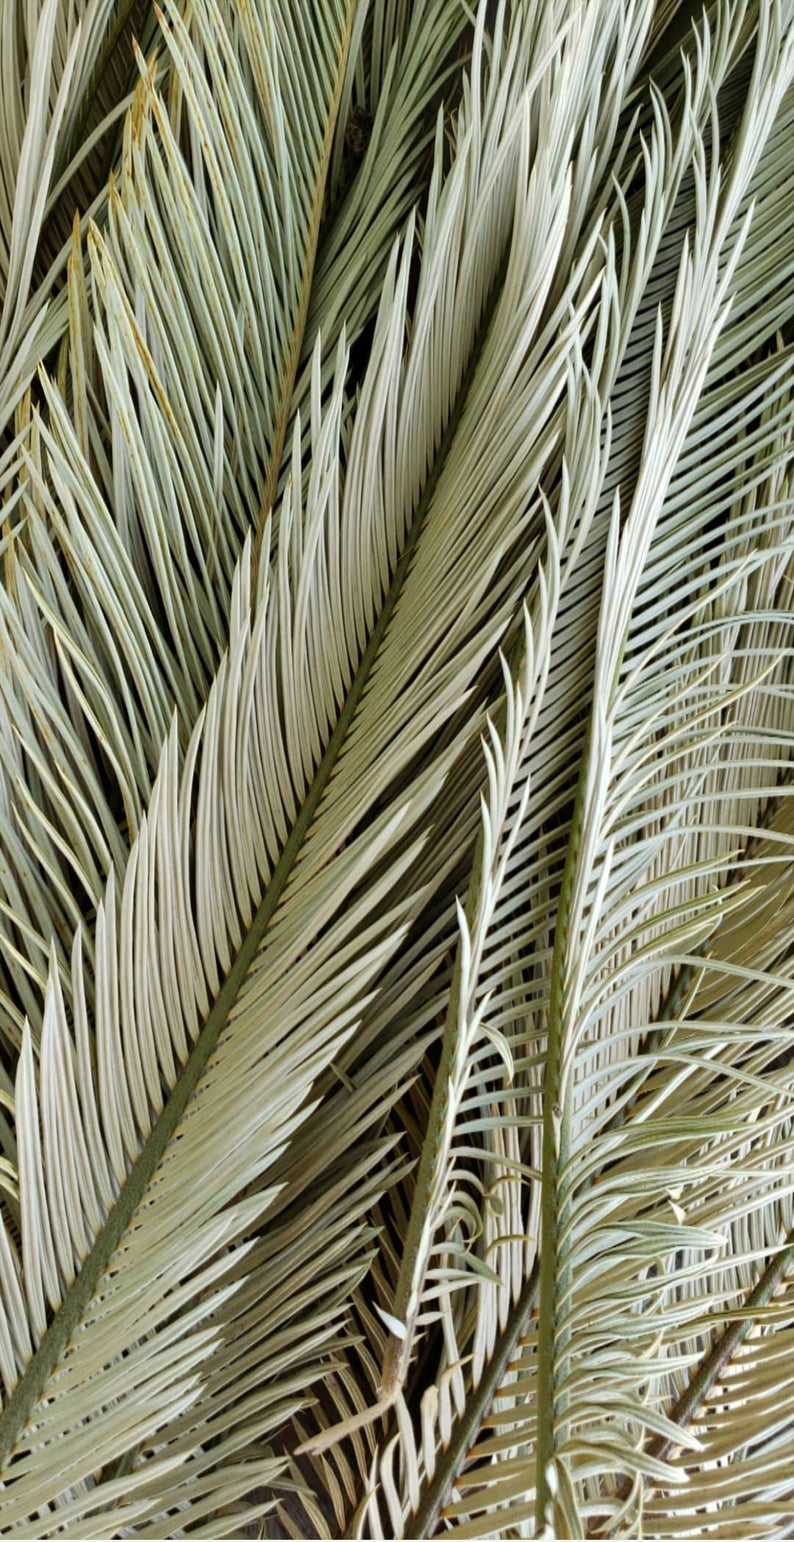 Dried Palm Fronds Dried Sago Palms Dried Palm Leaves Etsy In 2020 Desert Decor Nature Decor Green Aesthetic